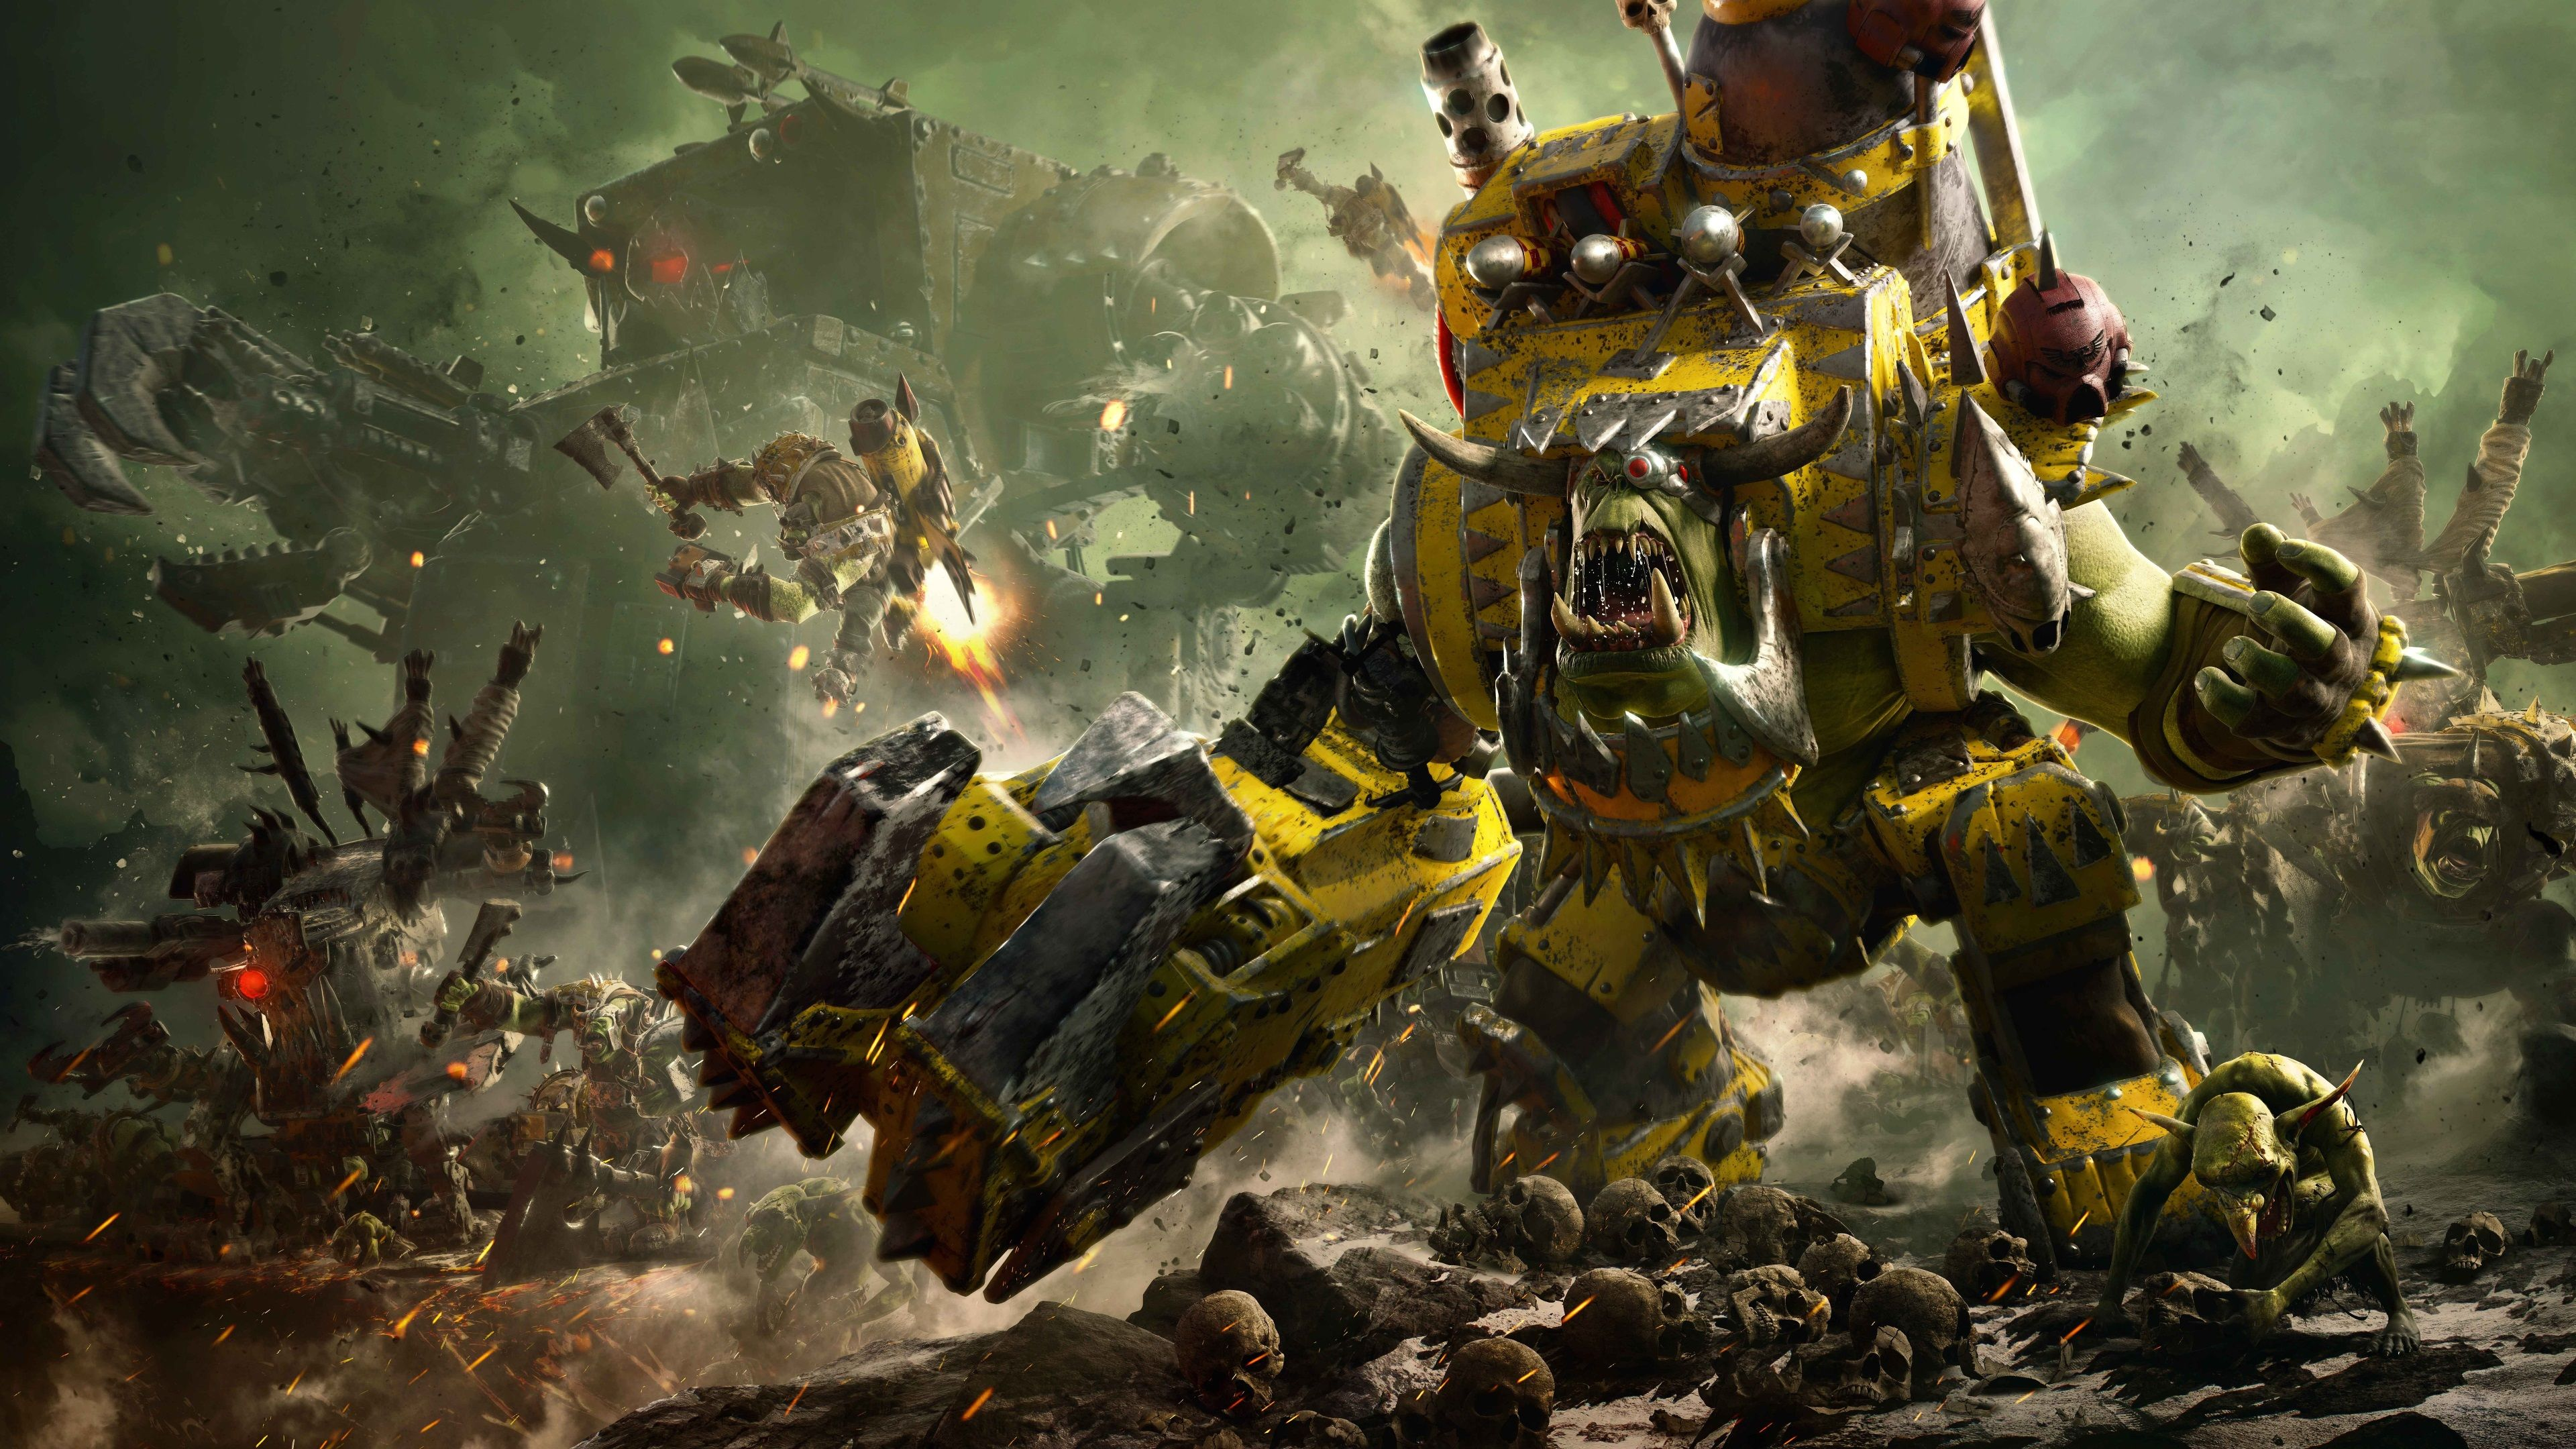 3840x2160 Warhammer 40k 4k Beautiful Background Wallpaper Warhammer Warhammer 40k Warhammer 40000